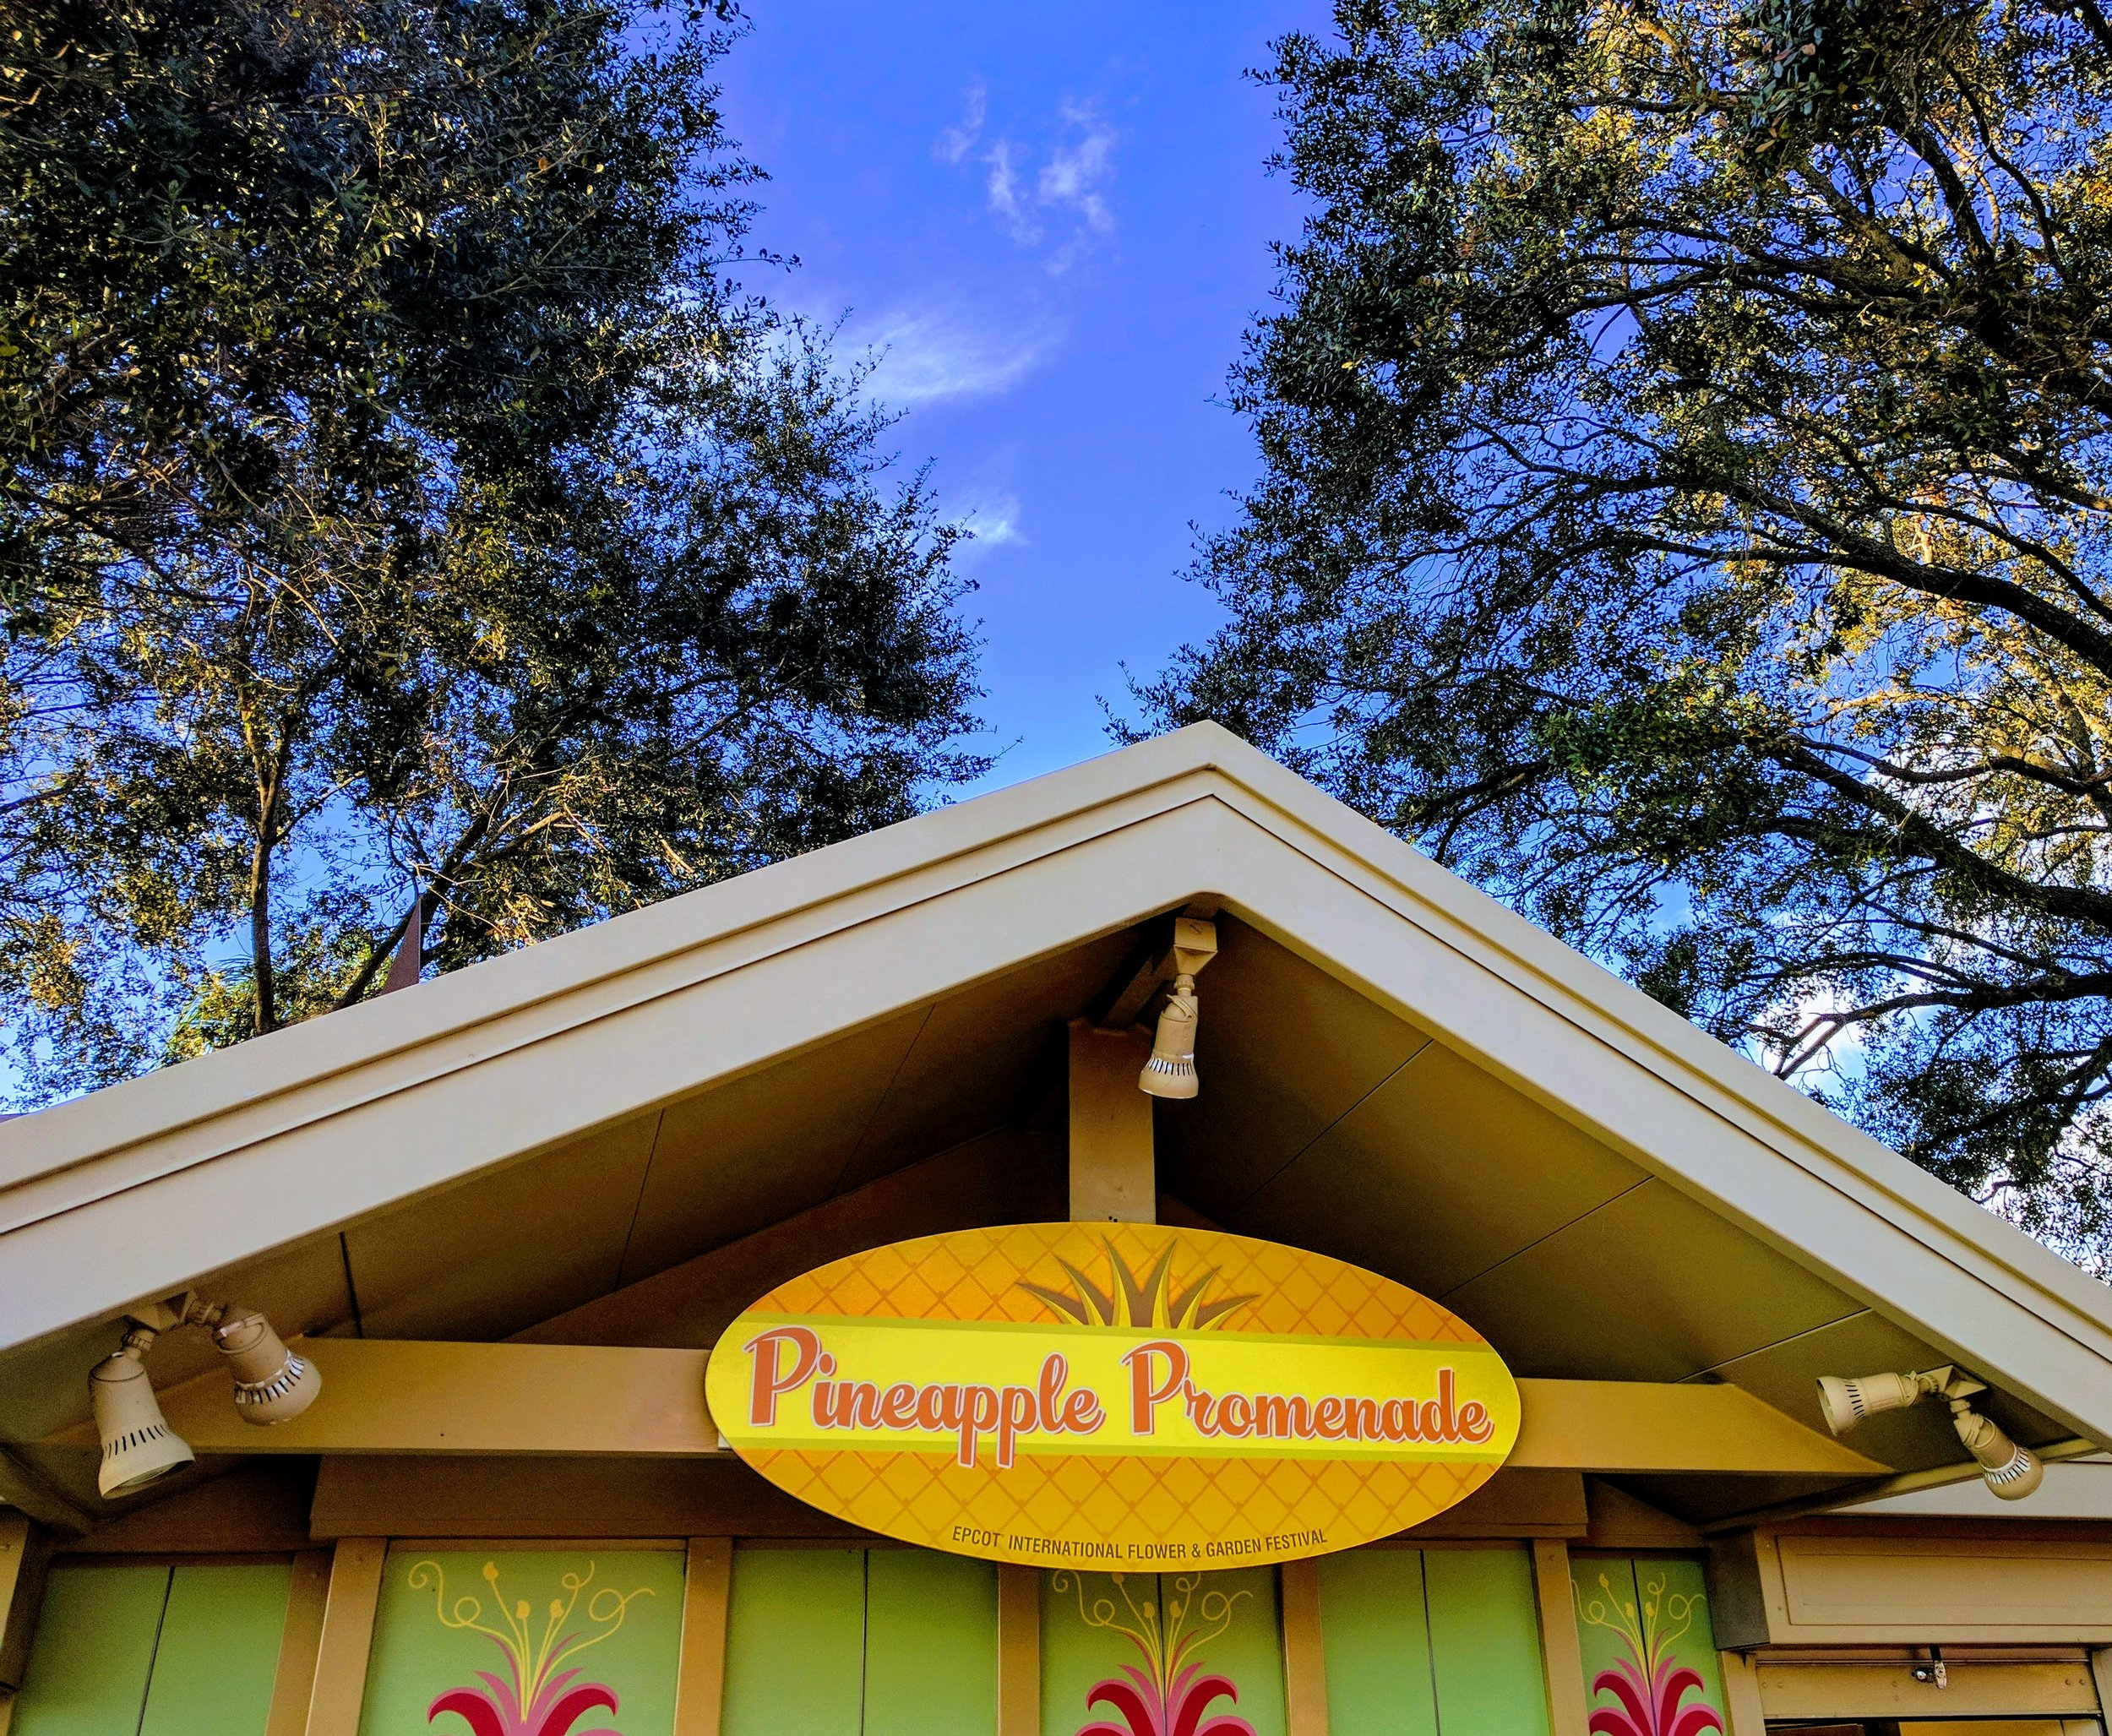 The Pineapple Promenade is the first booth to the right at the main entrance of the World Showcase. It is hard to miss with its bright pineapple designs.